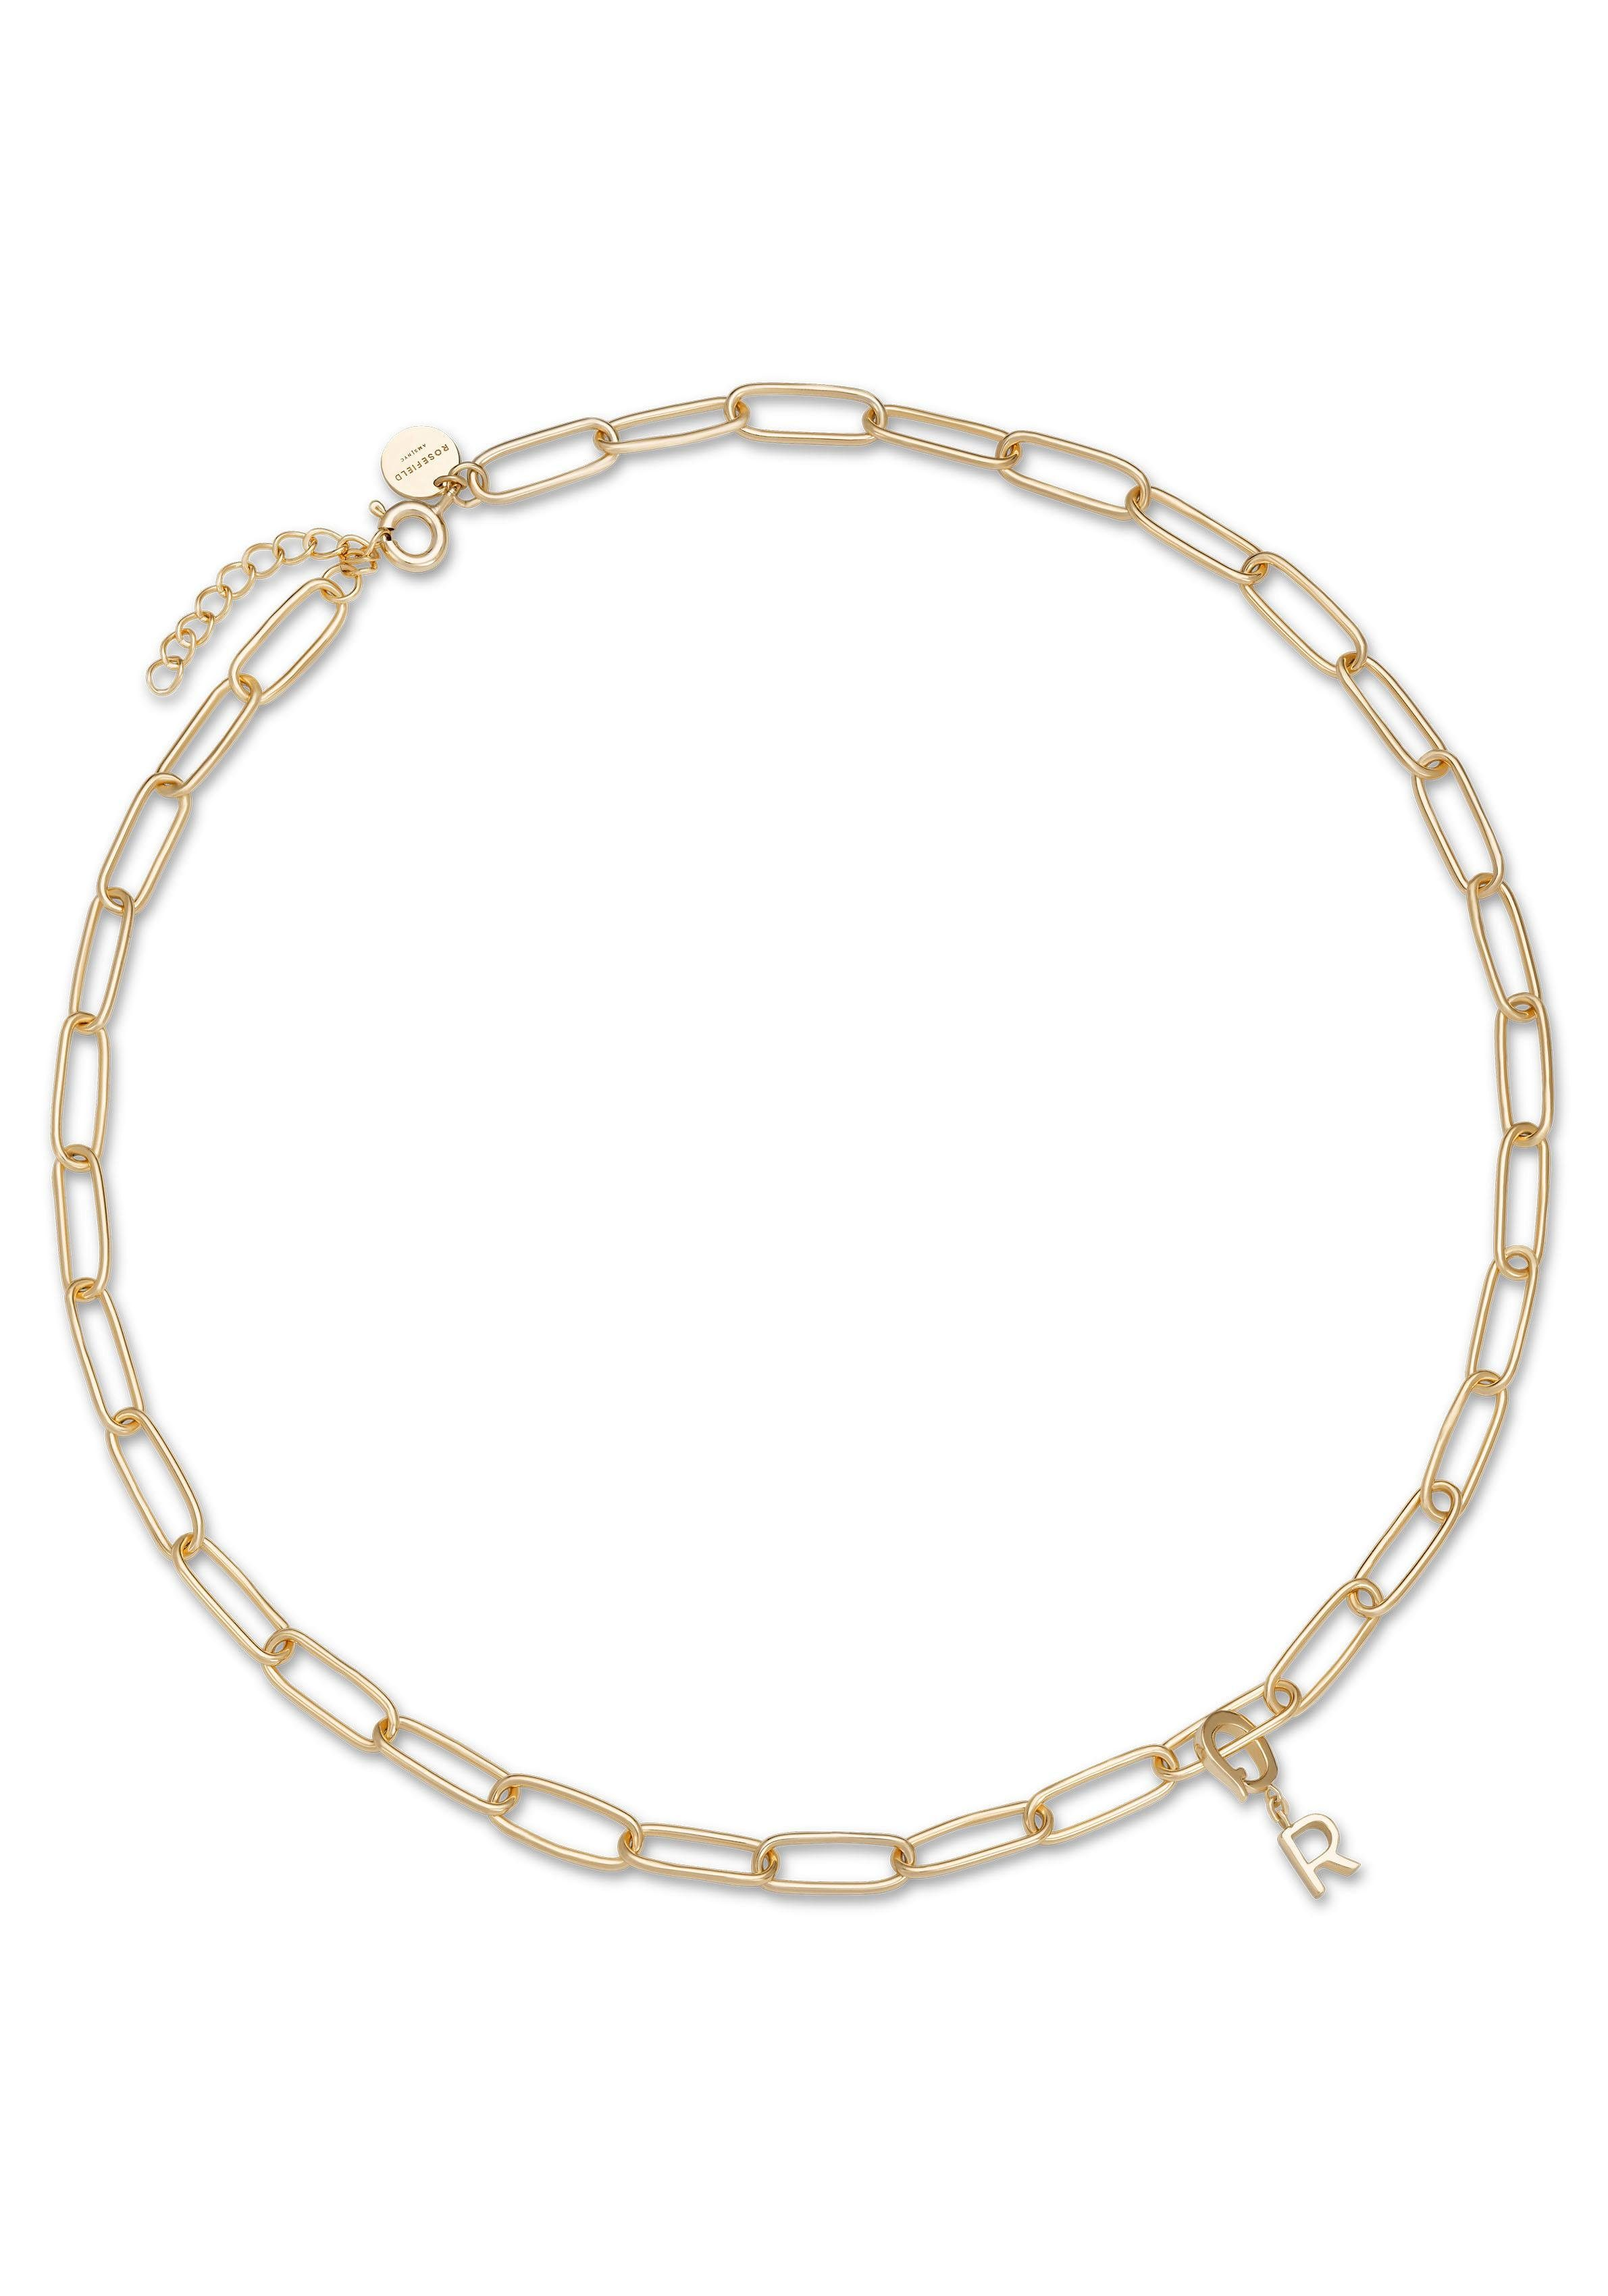 ROSEFIELD Charm-Kette »Initial chain necklace - Gold, JICNG-J019«